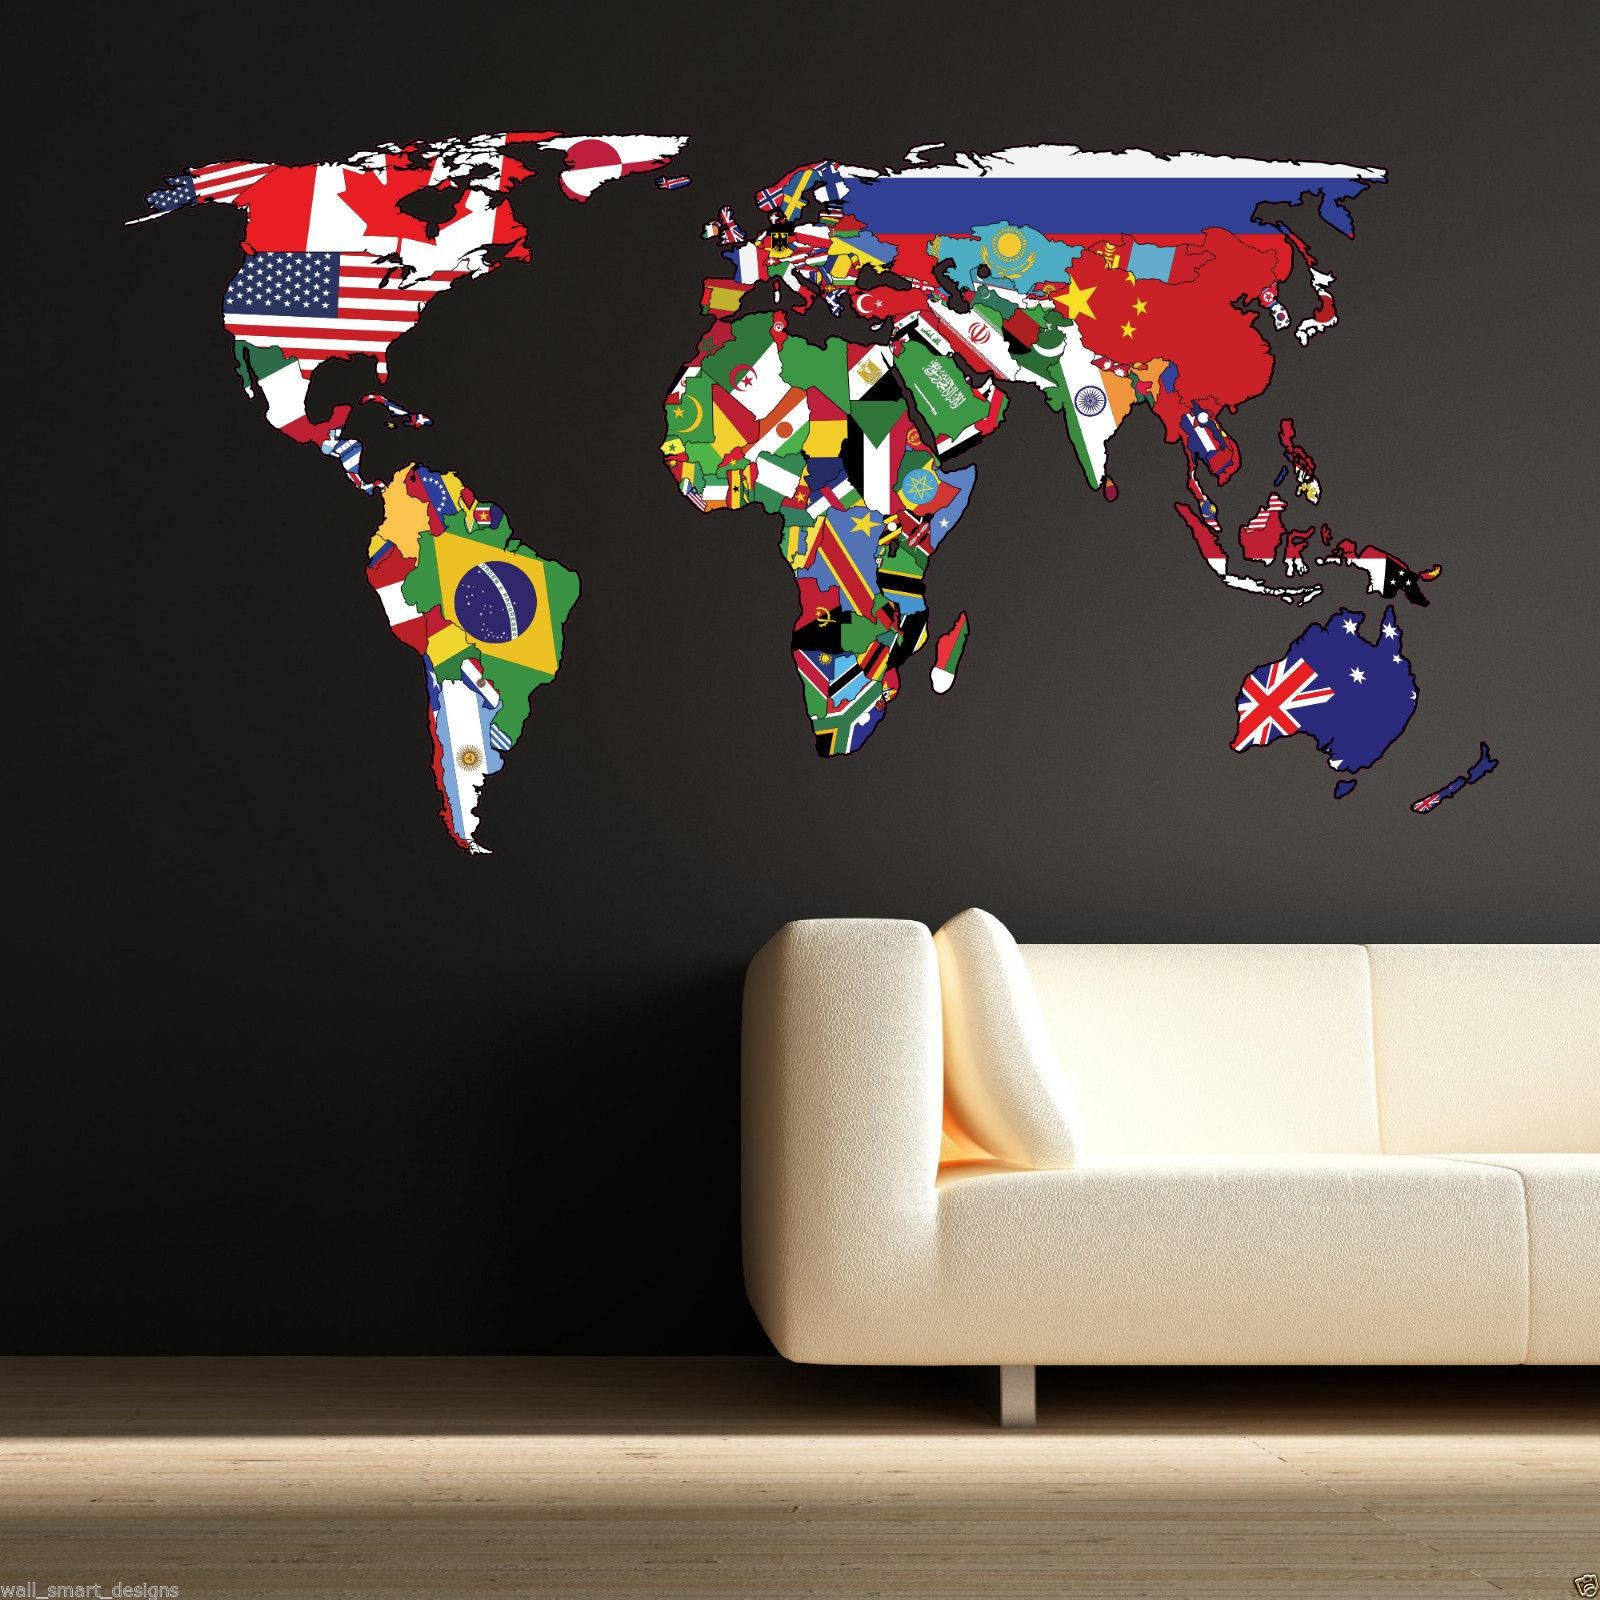 Atlas Wall Art – Wall Murals Ideas Within Most Up To Date Atlas Wall Art (View 2 of 20)